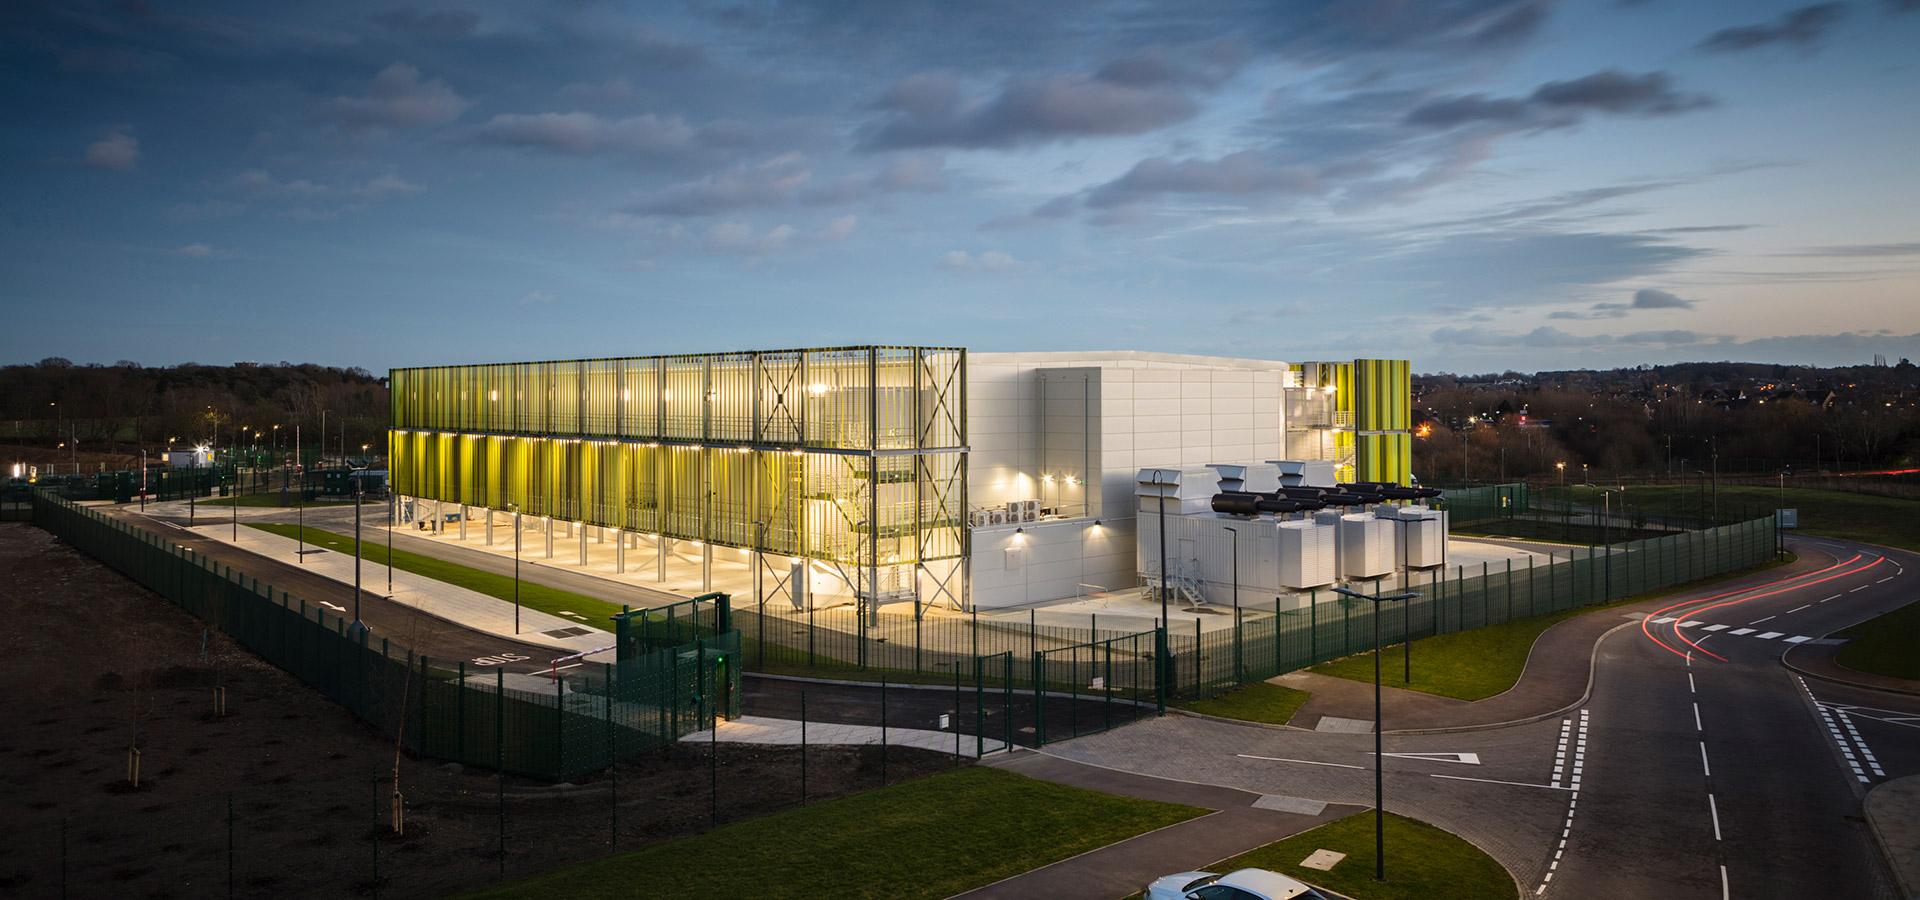 Kao Data Increases Commitment to Sustainability, Deploying 100% Renewable Energy at its London Data Centre Campus